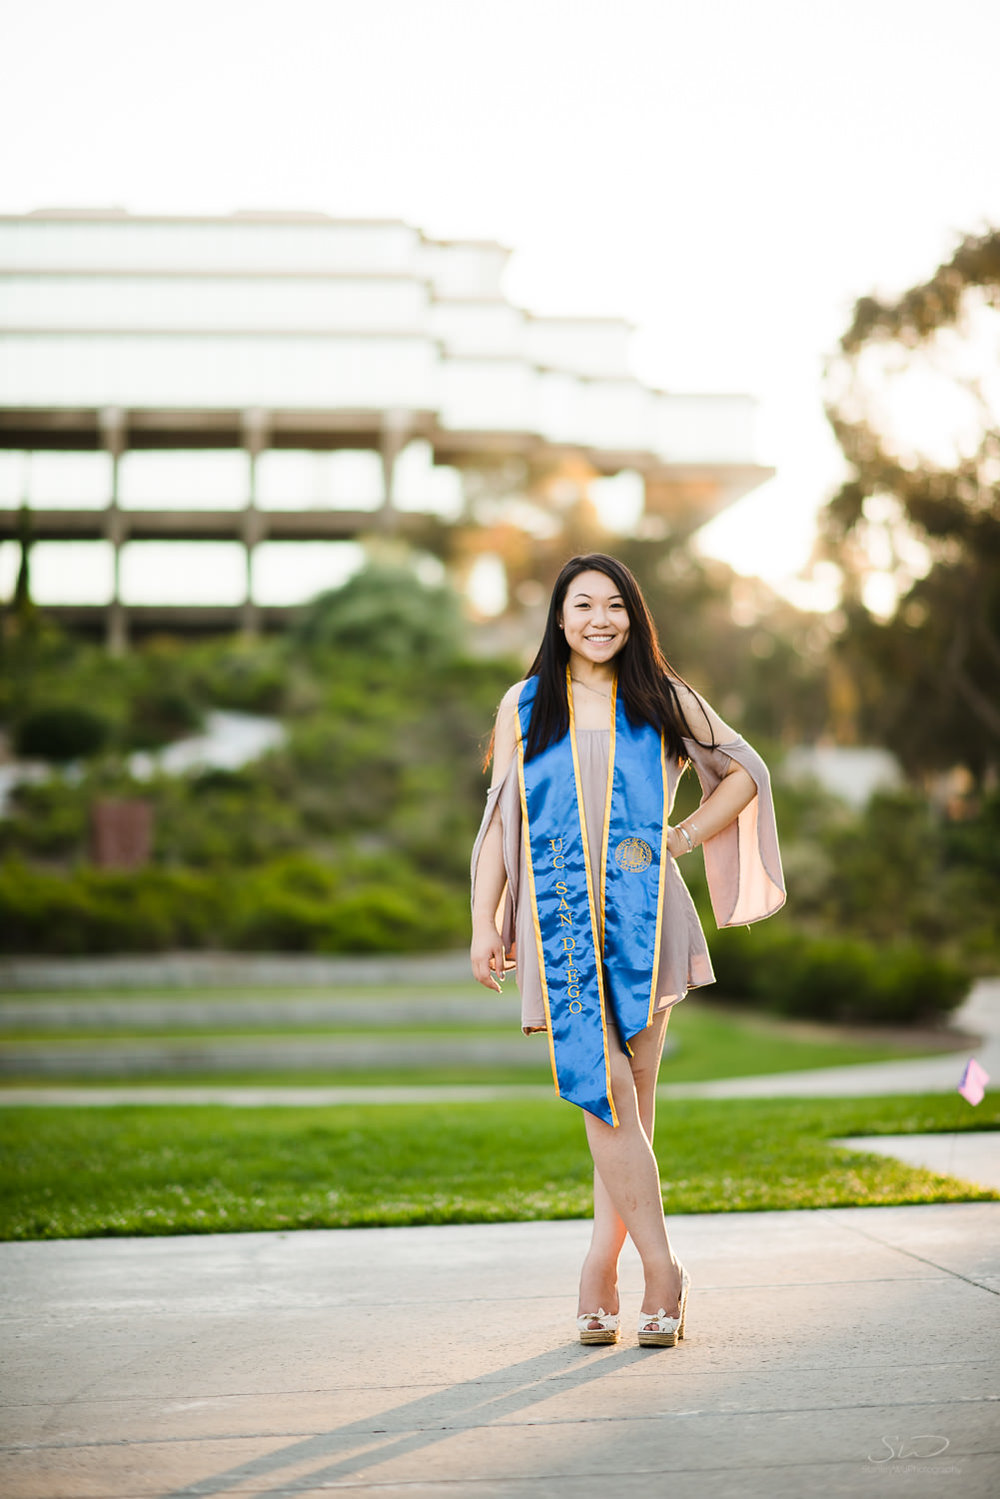 Posing in front of Geisel Library at UC San Diego UCSD. Best graduation portrait photography, Los Angeles.